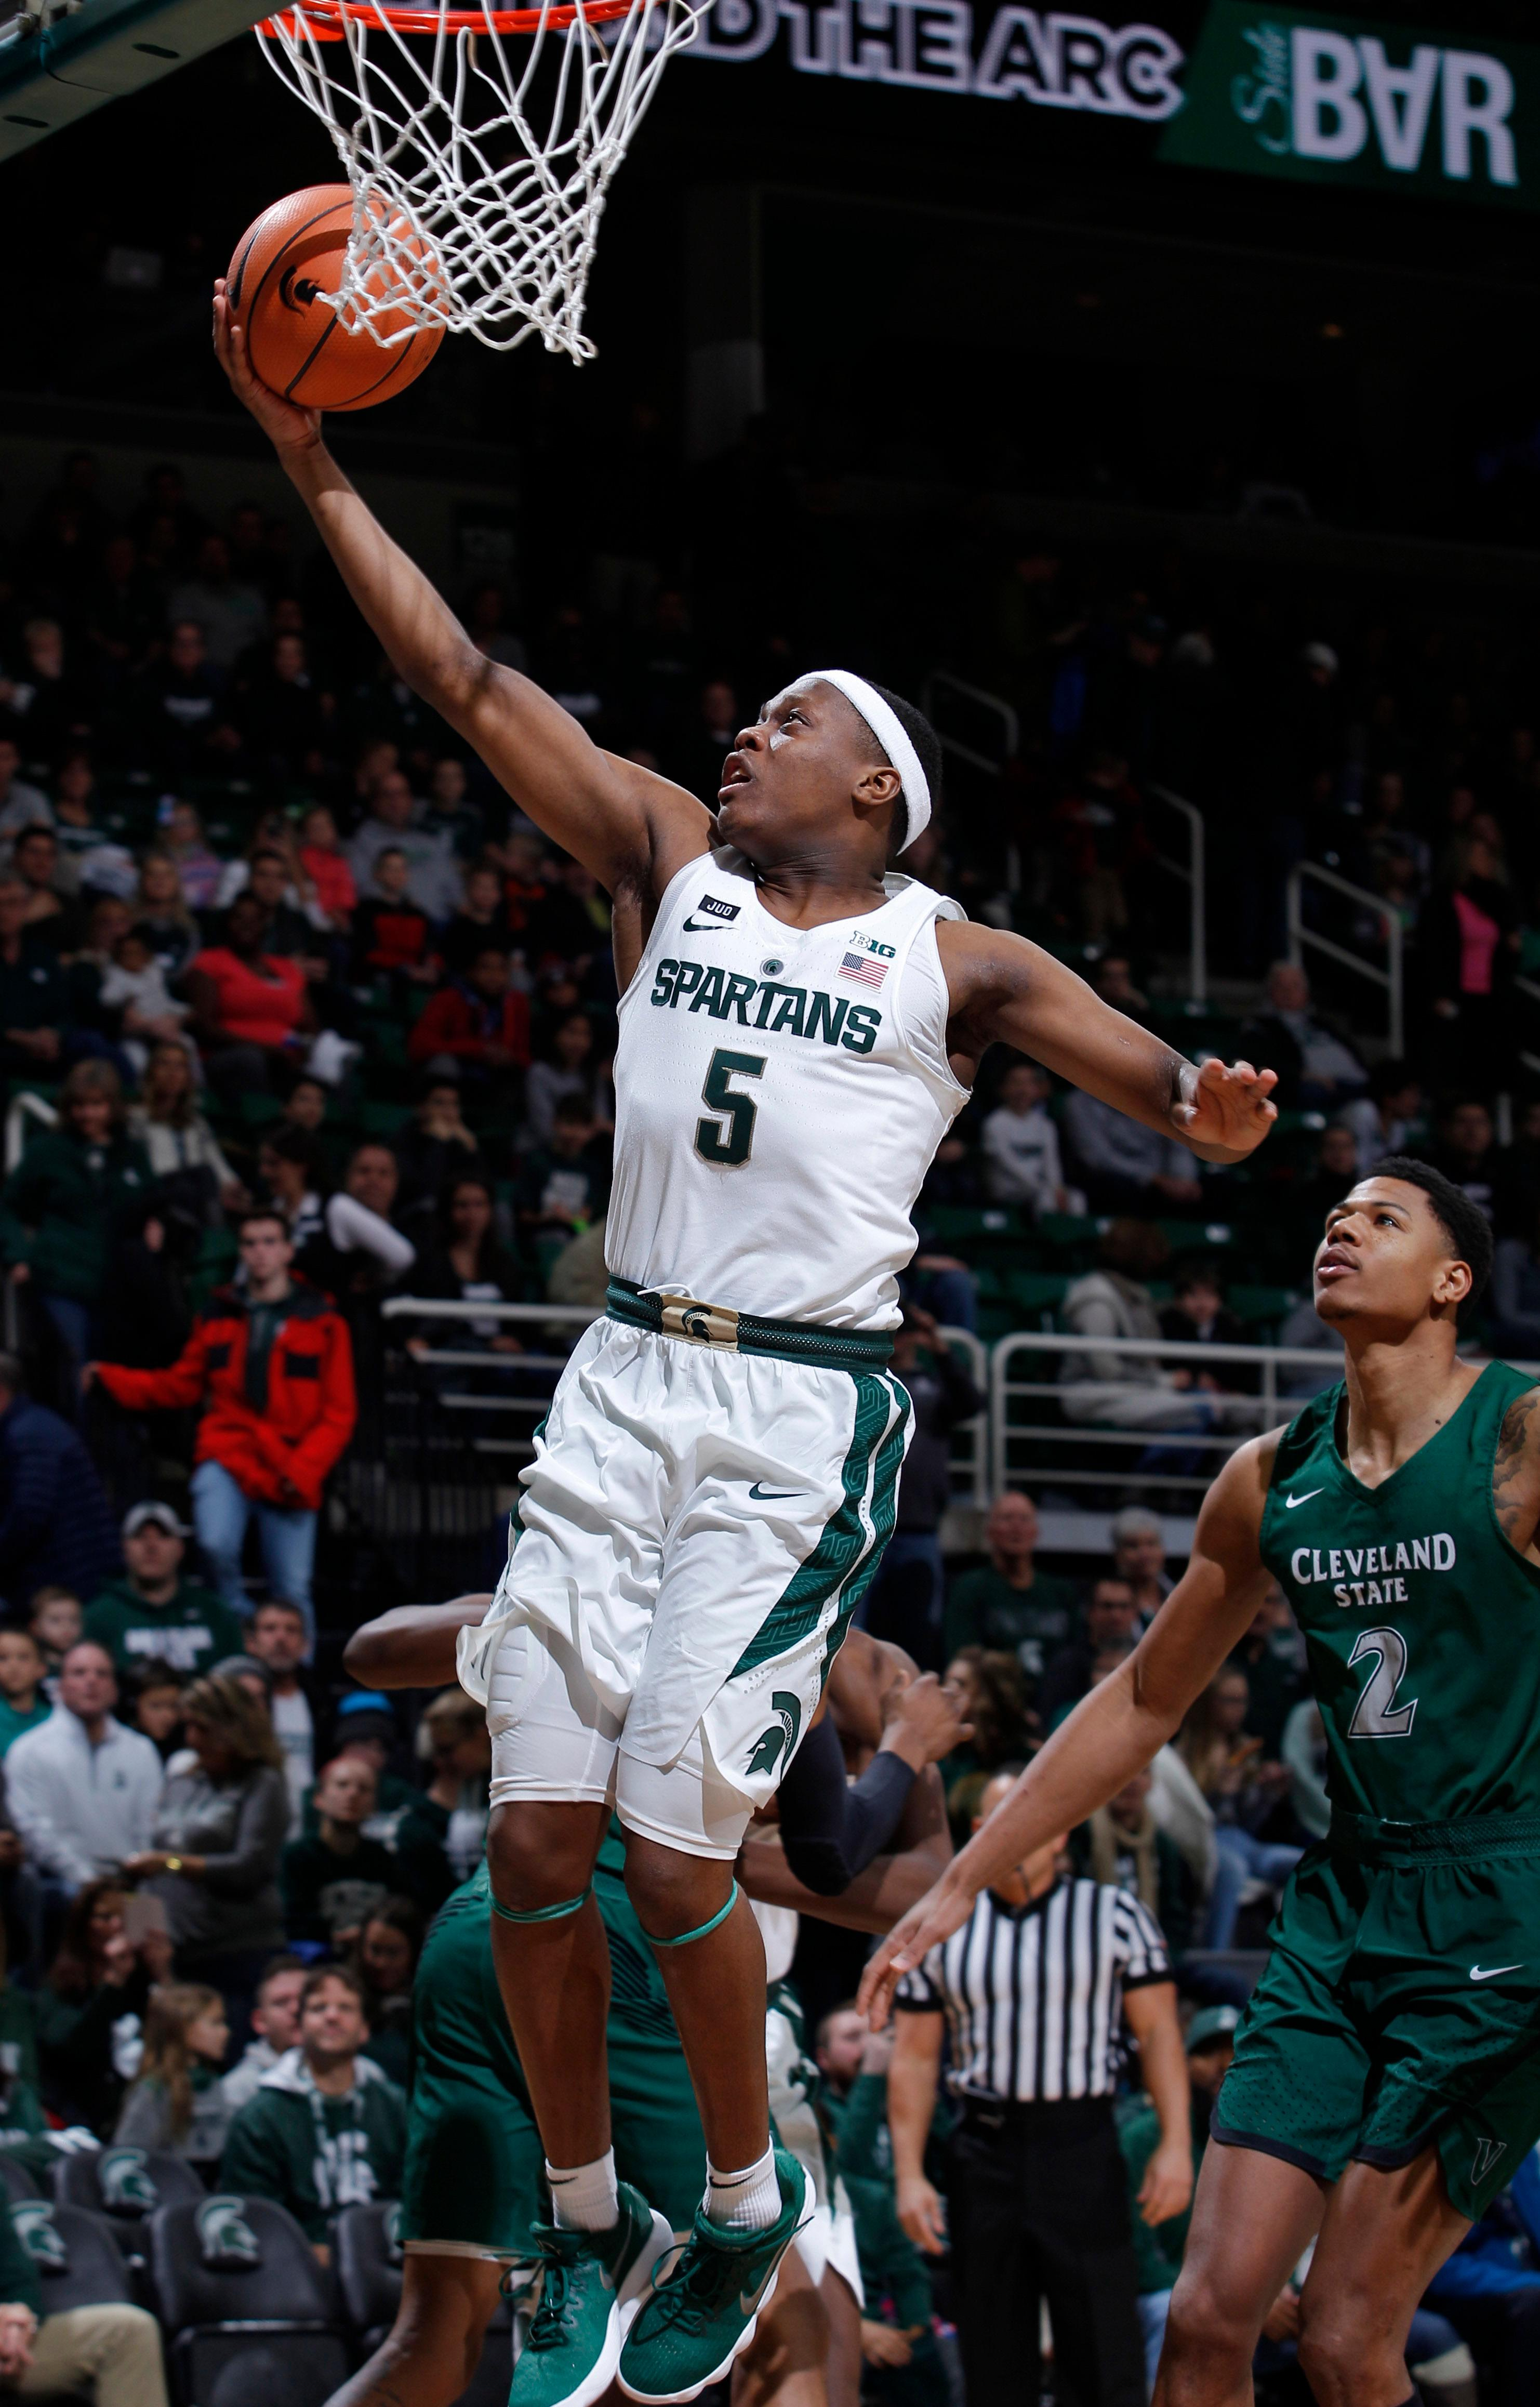 Michigan State's Cassius Winston (5) shoots a layup in front of Cleveland State's Anthony Wright (2) during the first half of an NCAA college basketball game Friday, Dec. 29, 2017, in East Lansing, Mich. (AP Photo/Al Goldis)